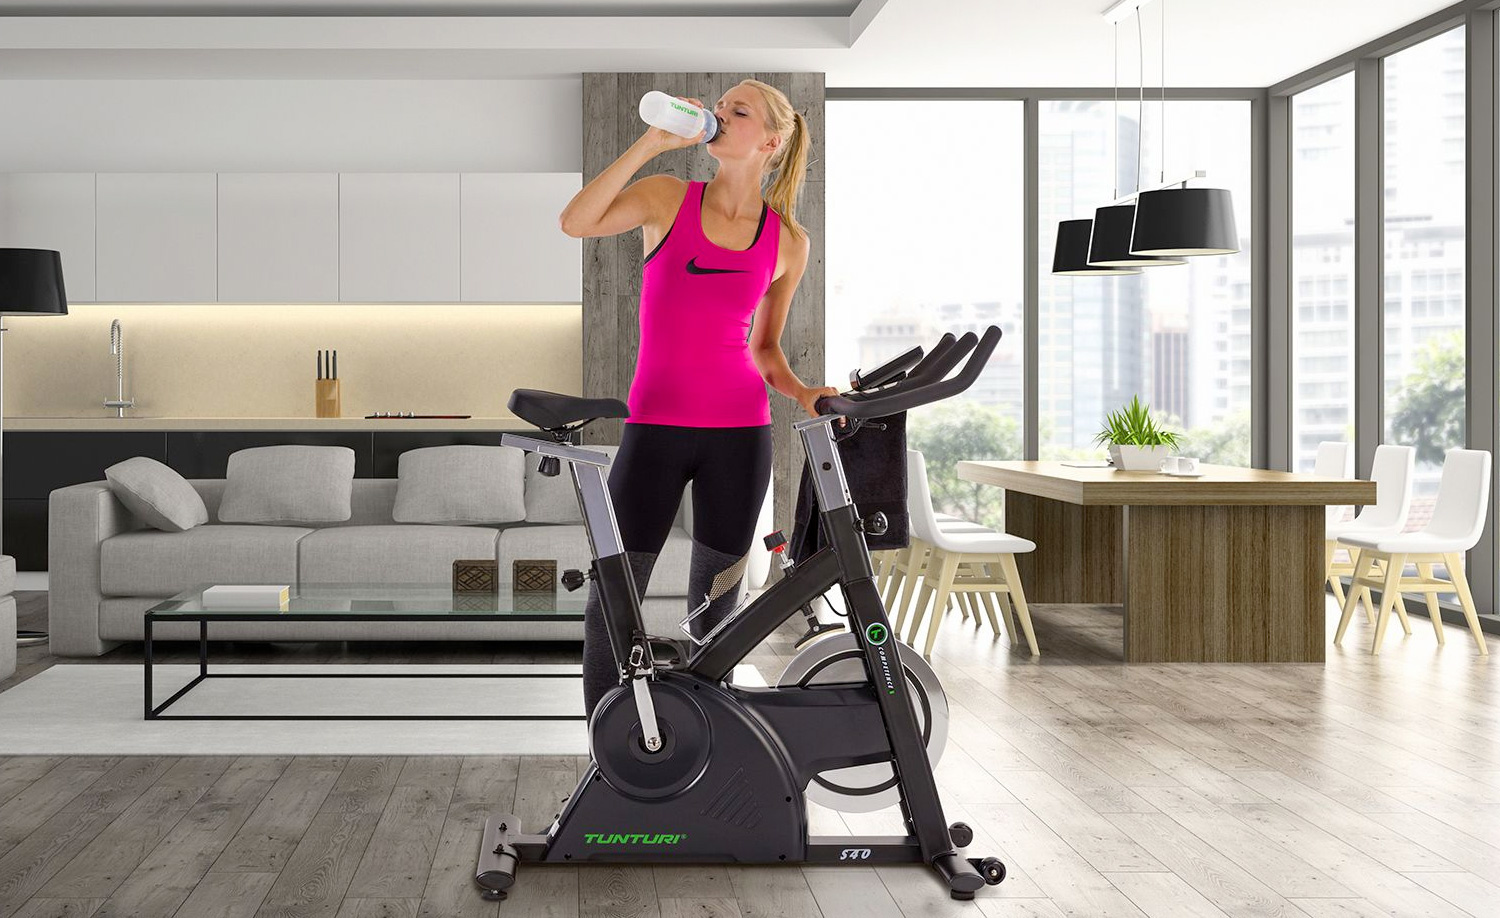 Cardio workouts: the easiest way to improve your endurance